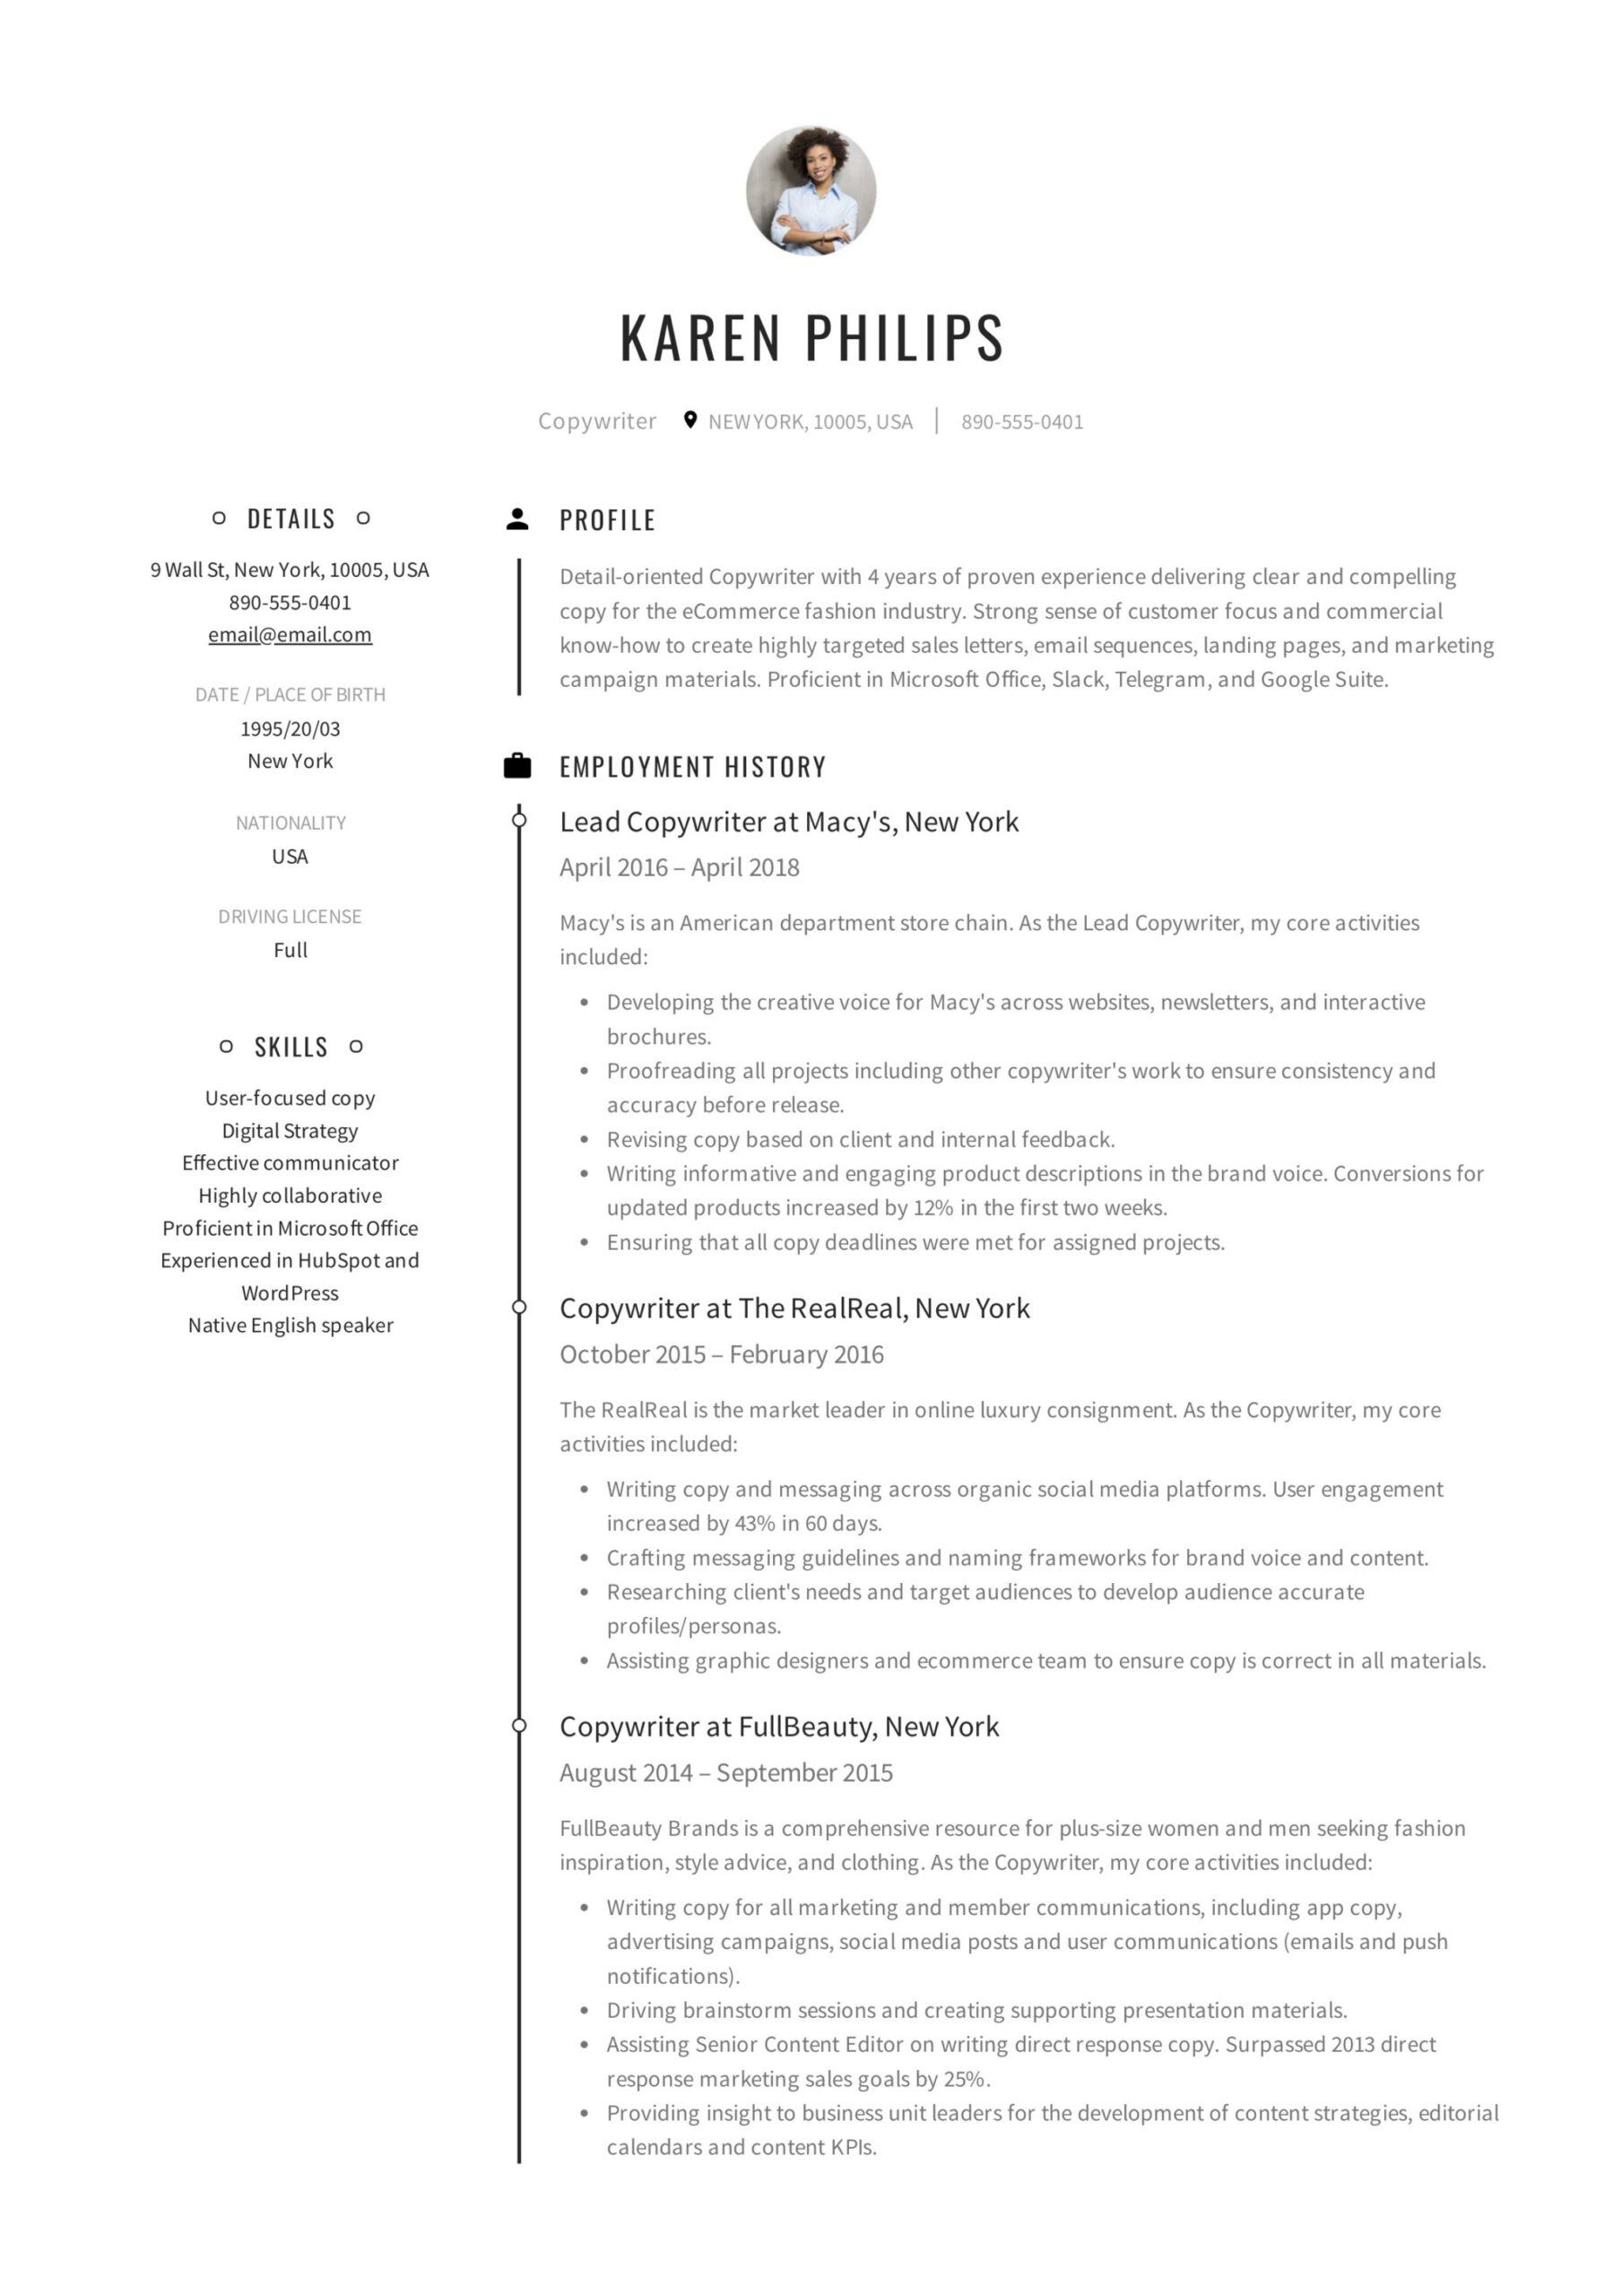 copywriter resume writing guide templates pdf creative sample best brand manager template Resume Creative Copywriter Resume Templates